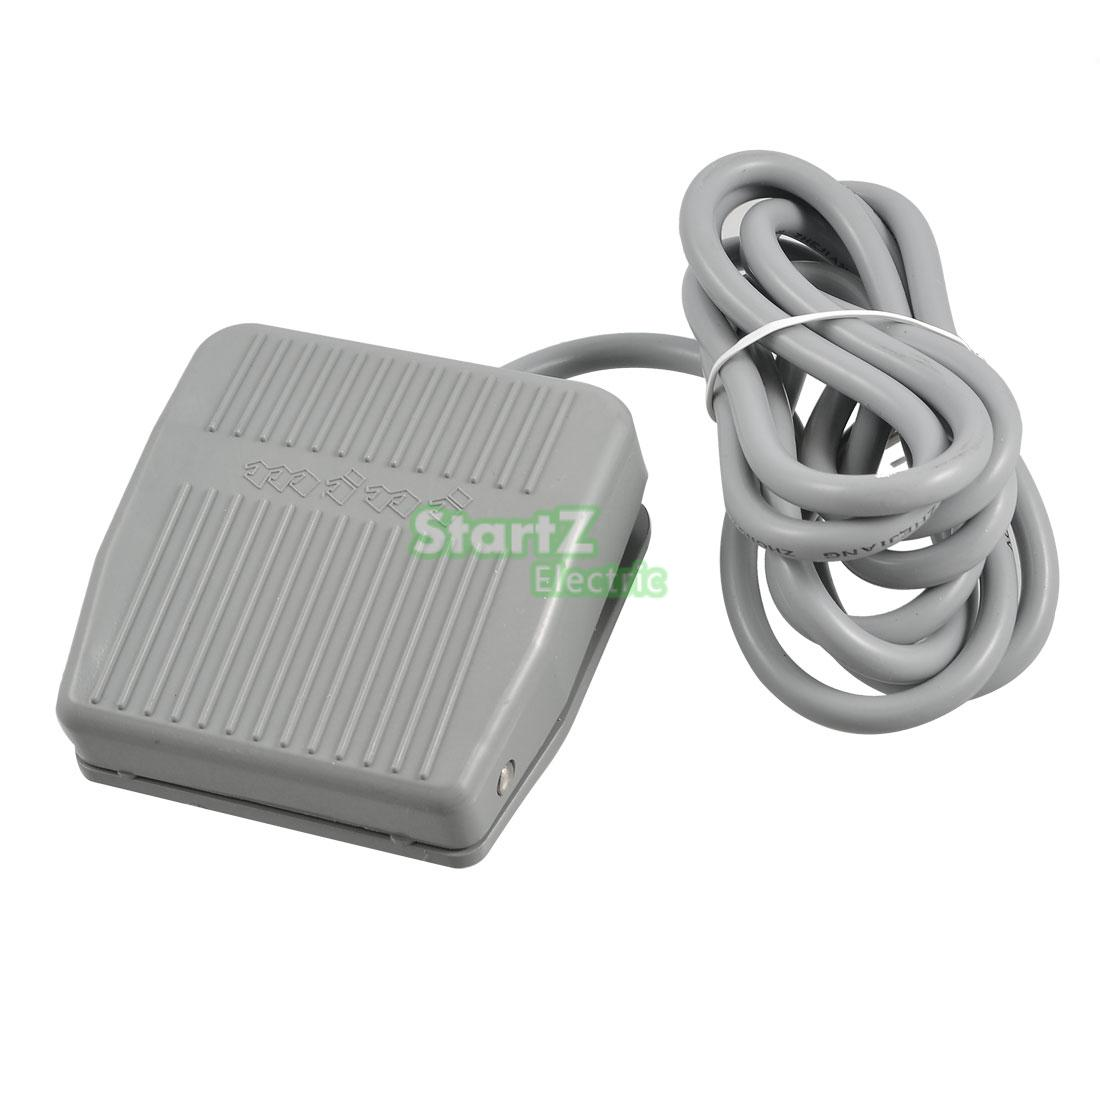 10A 250V AC Foot Switch Pedal Switch Electric Foot Pedal On//Off Control with 2m Cable TFS-201 Pedal Switch